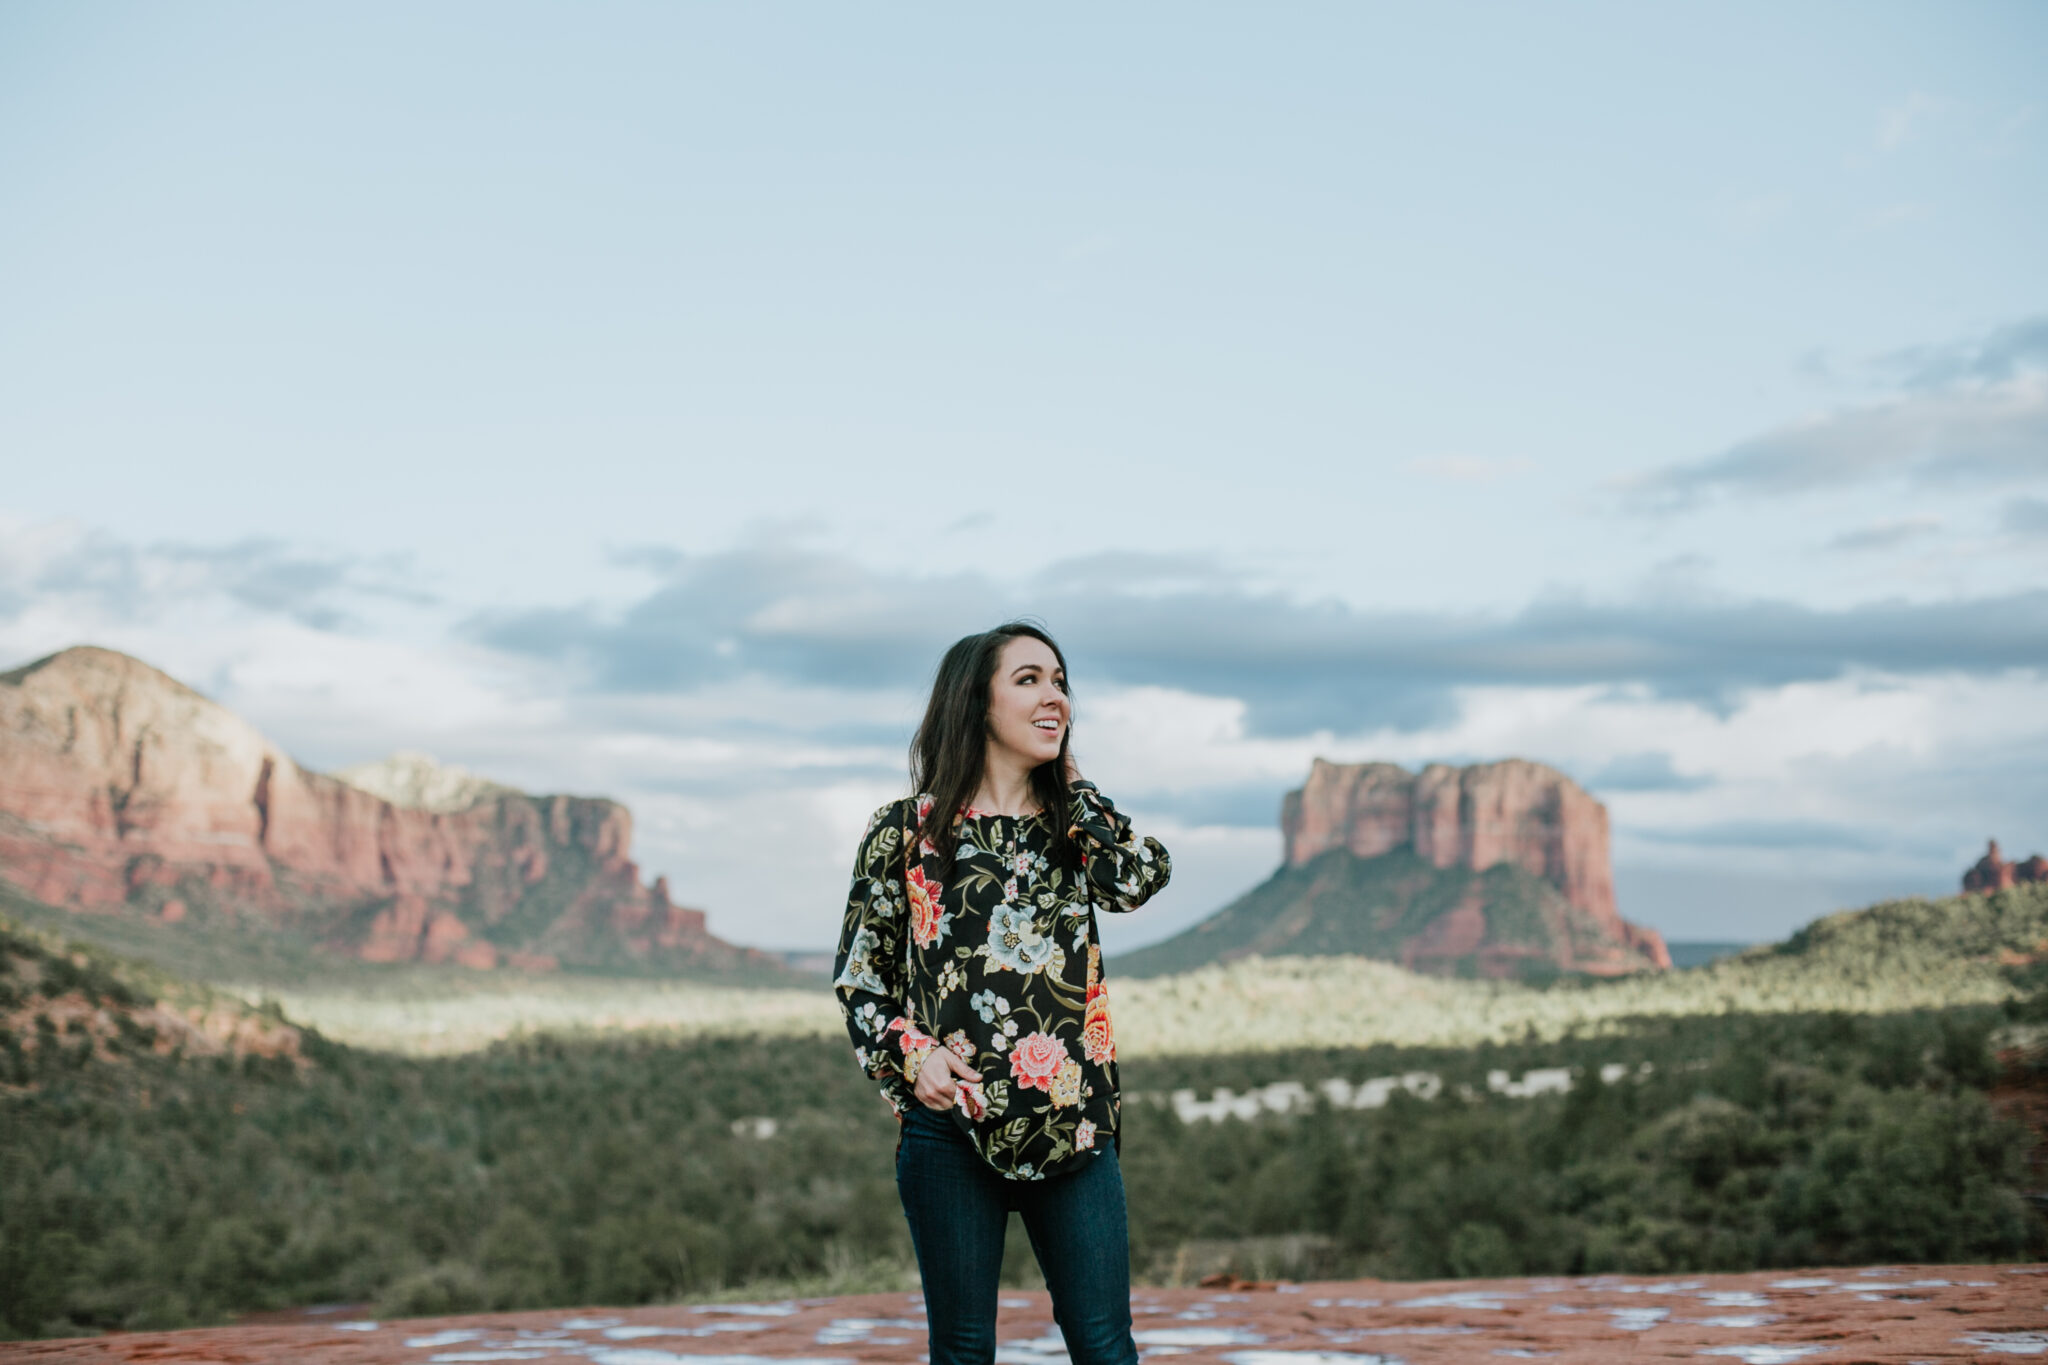 Sedona, Arizona is one of the most breathtaking places I have ever seen. It was perfect for a weekend getaway because of the great views and relaxing vibe.